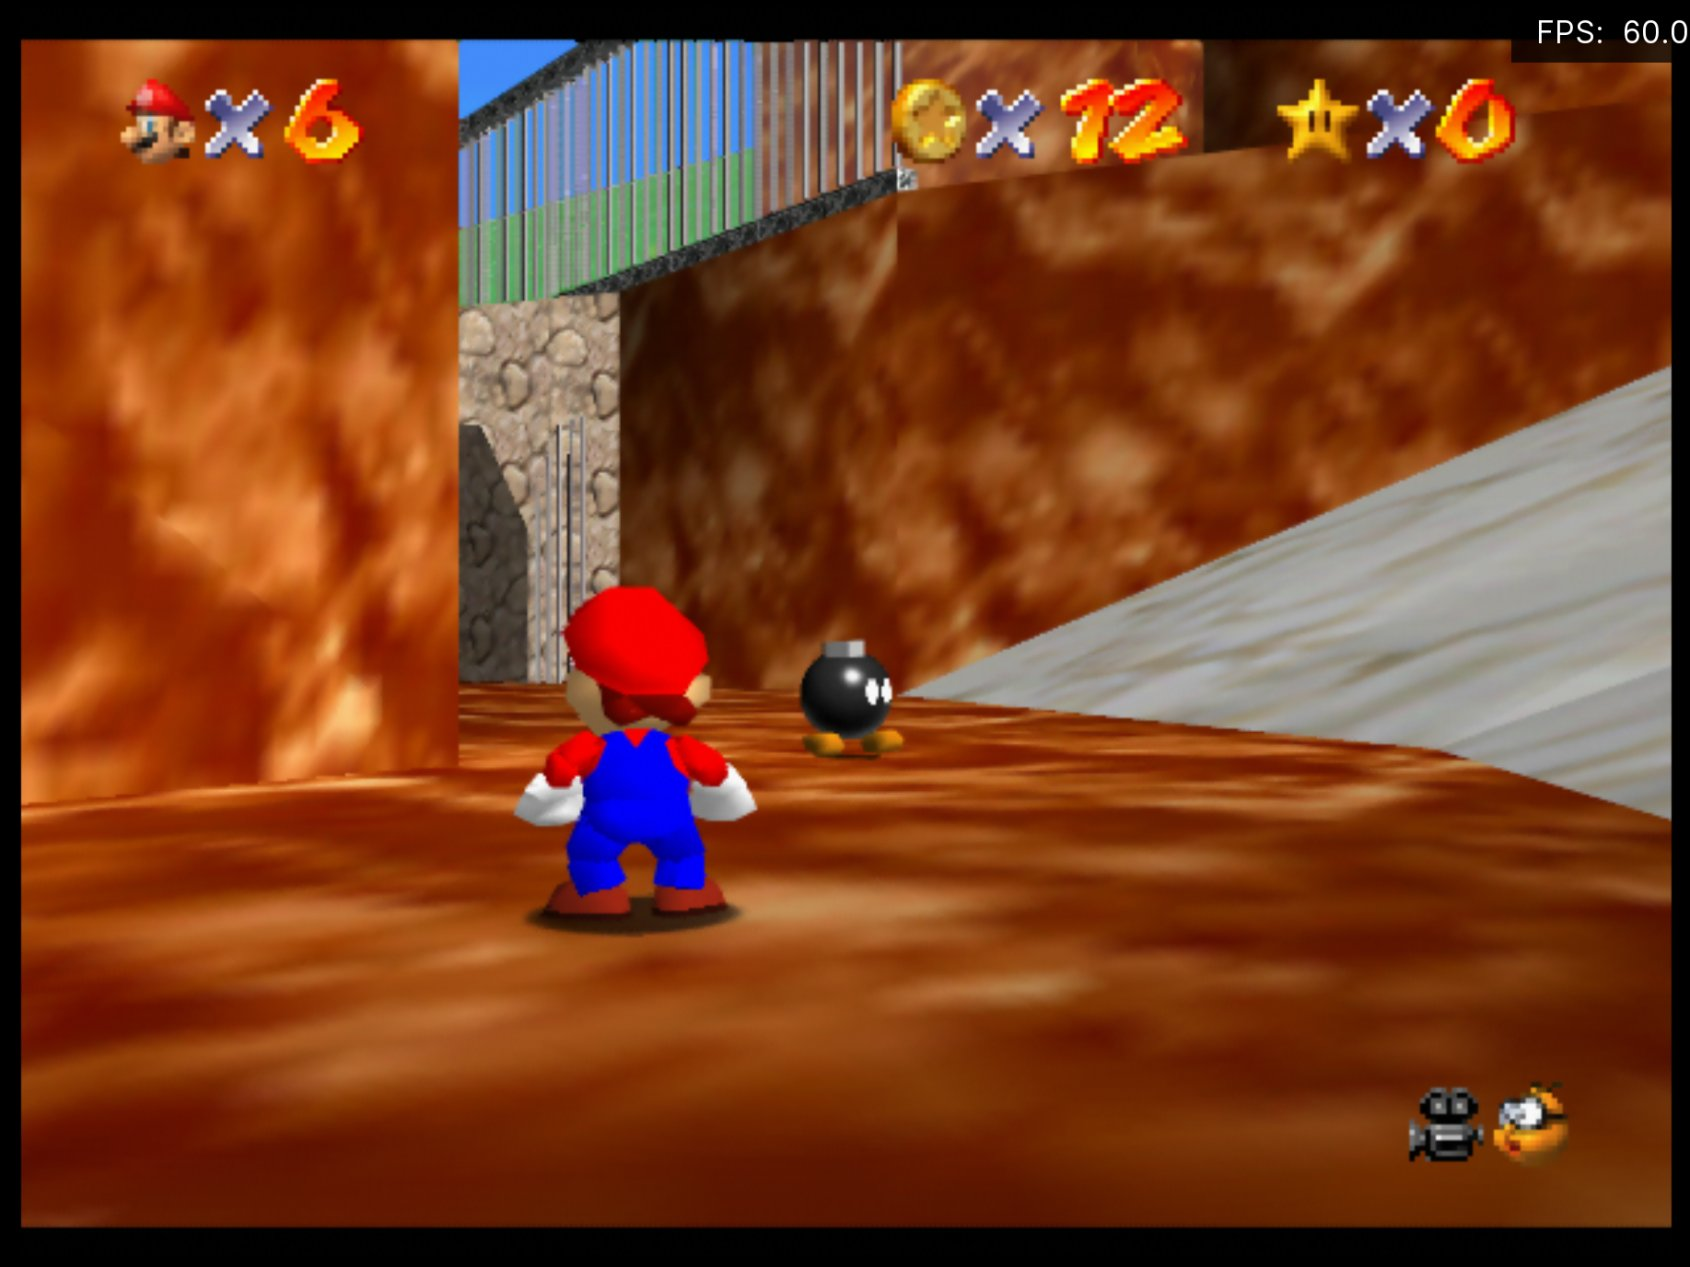 Super Mario 64 running on ParaLLEl RDP with 2x internal upscale